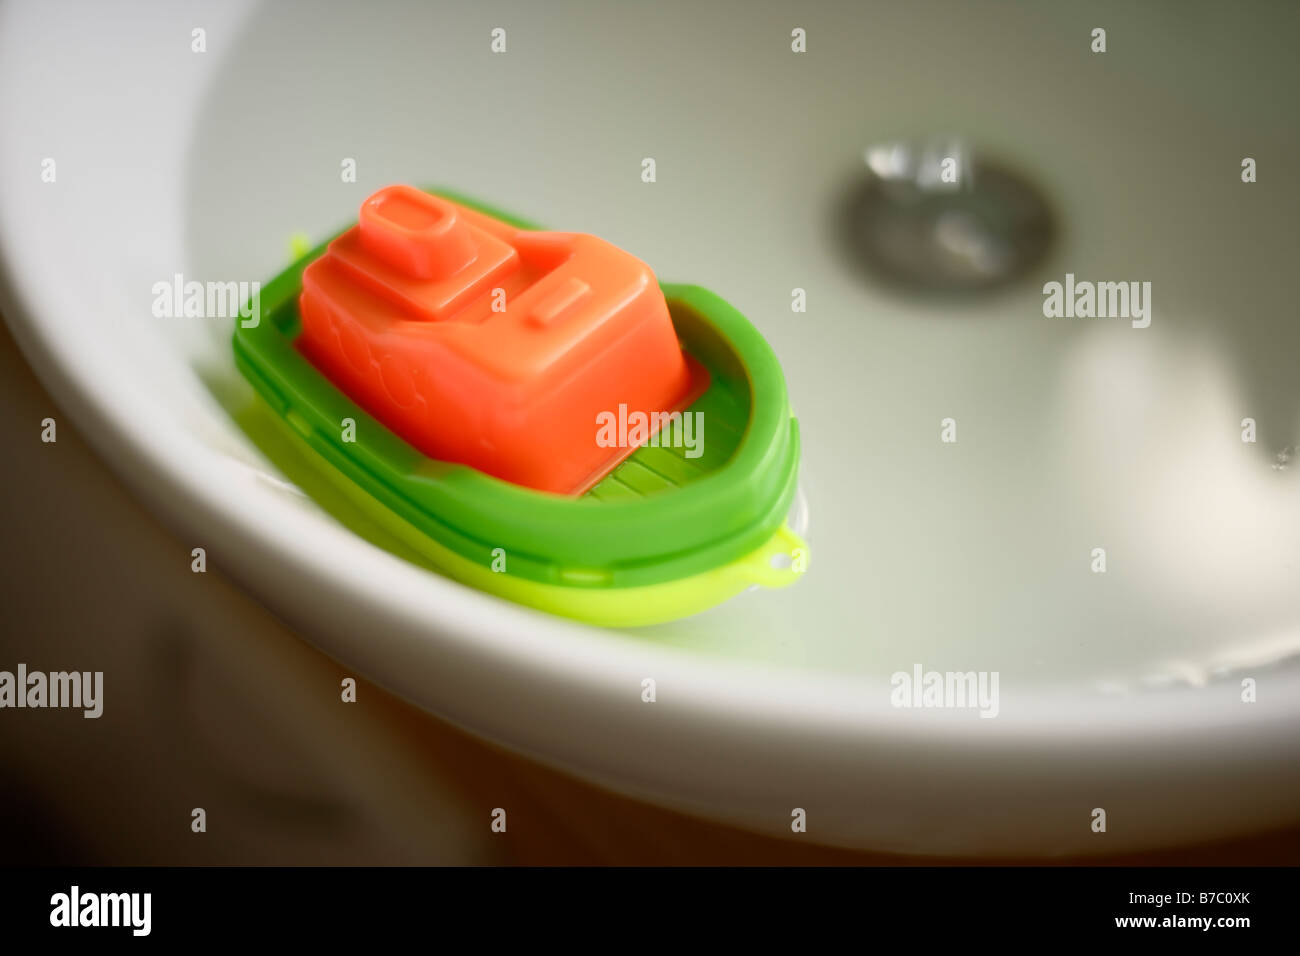 Child's toy plastic boat in sink full of water - Stock Image